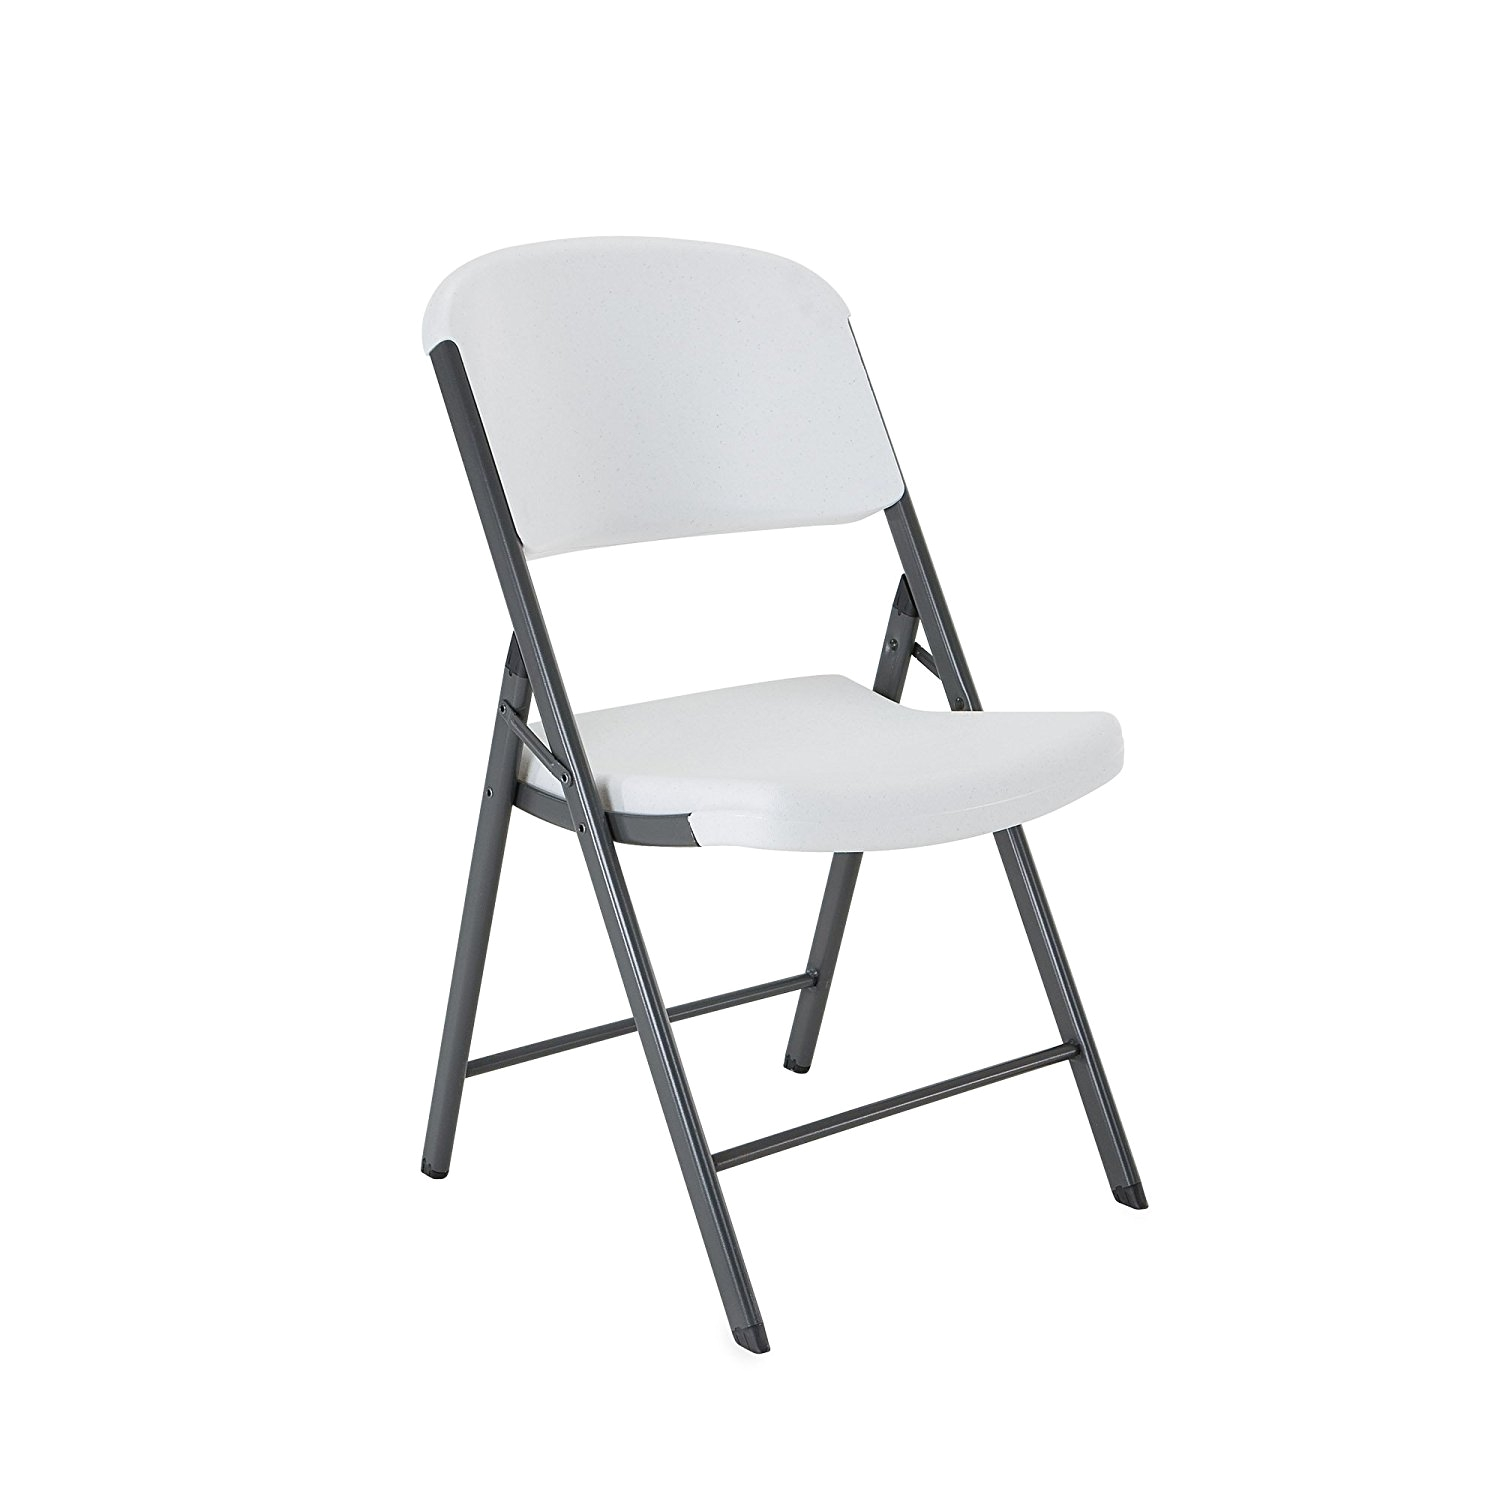 Lifetime White Plastic Folding Chairs July 2018 Archive Page 161 Risom Chair Plastic Folding Chairs